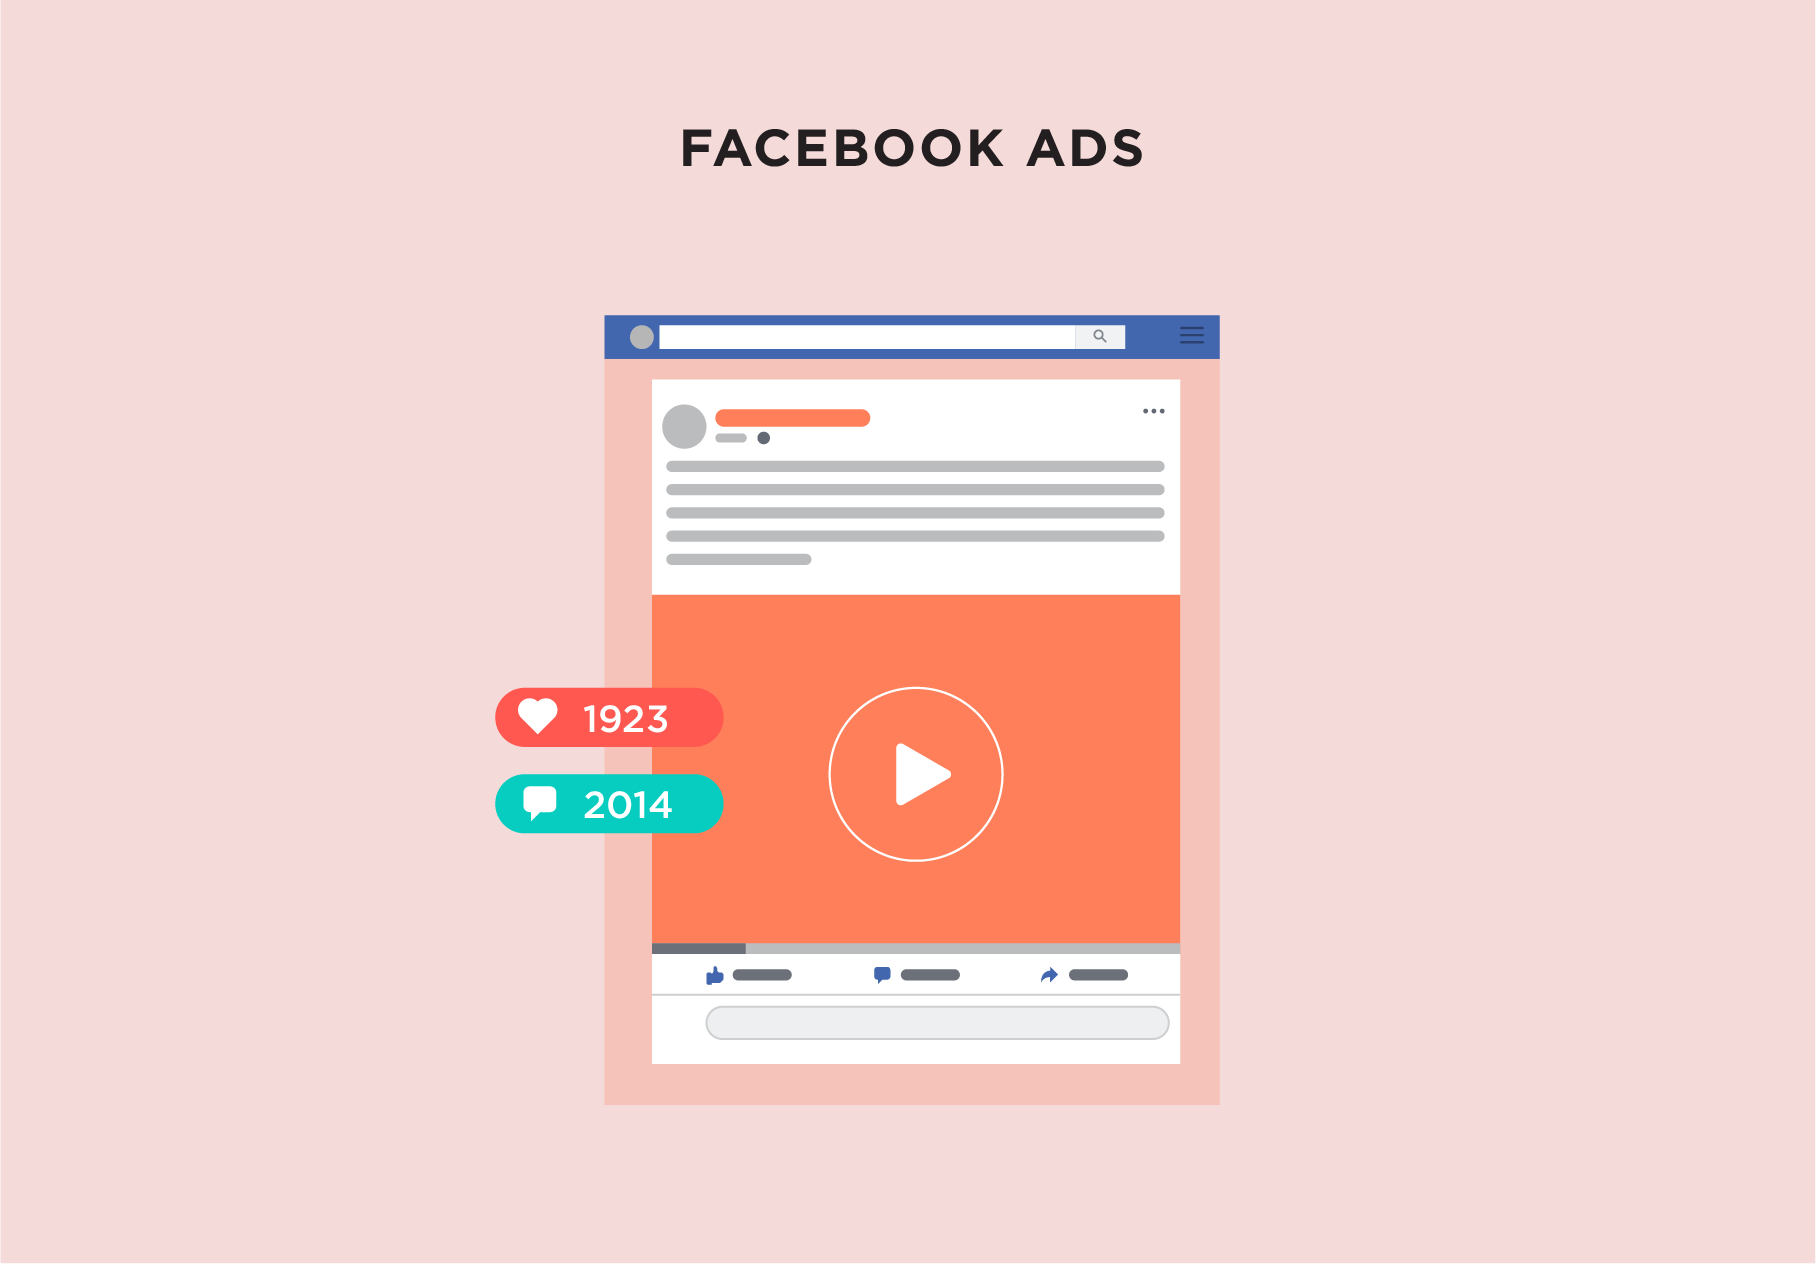 Use Facebook Ads to target your market